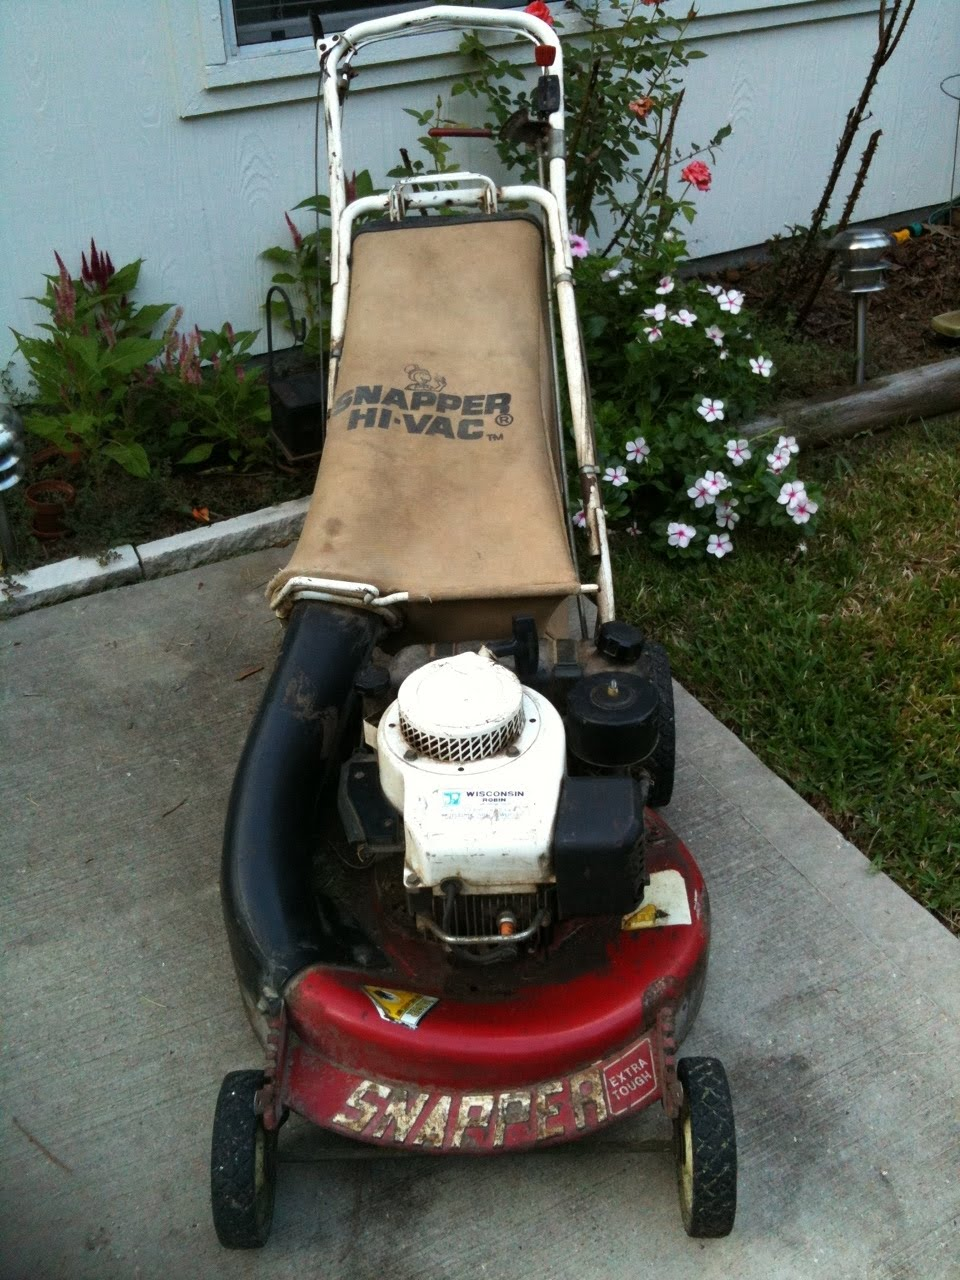 Old snapper lawn mower engine old free engine image for for Motor for lawn mower